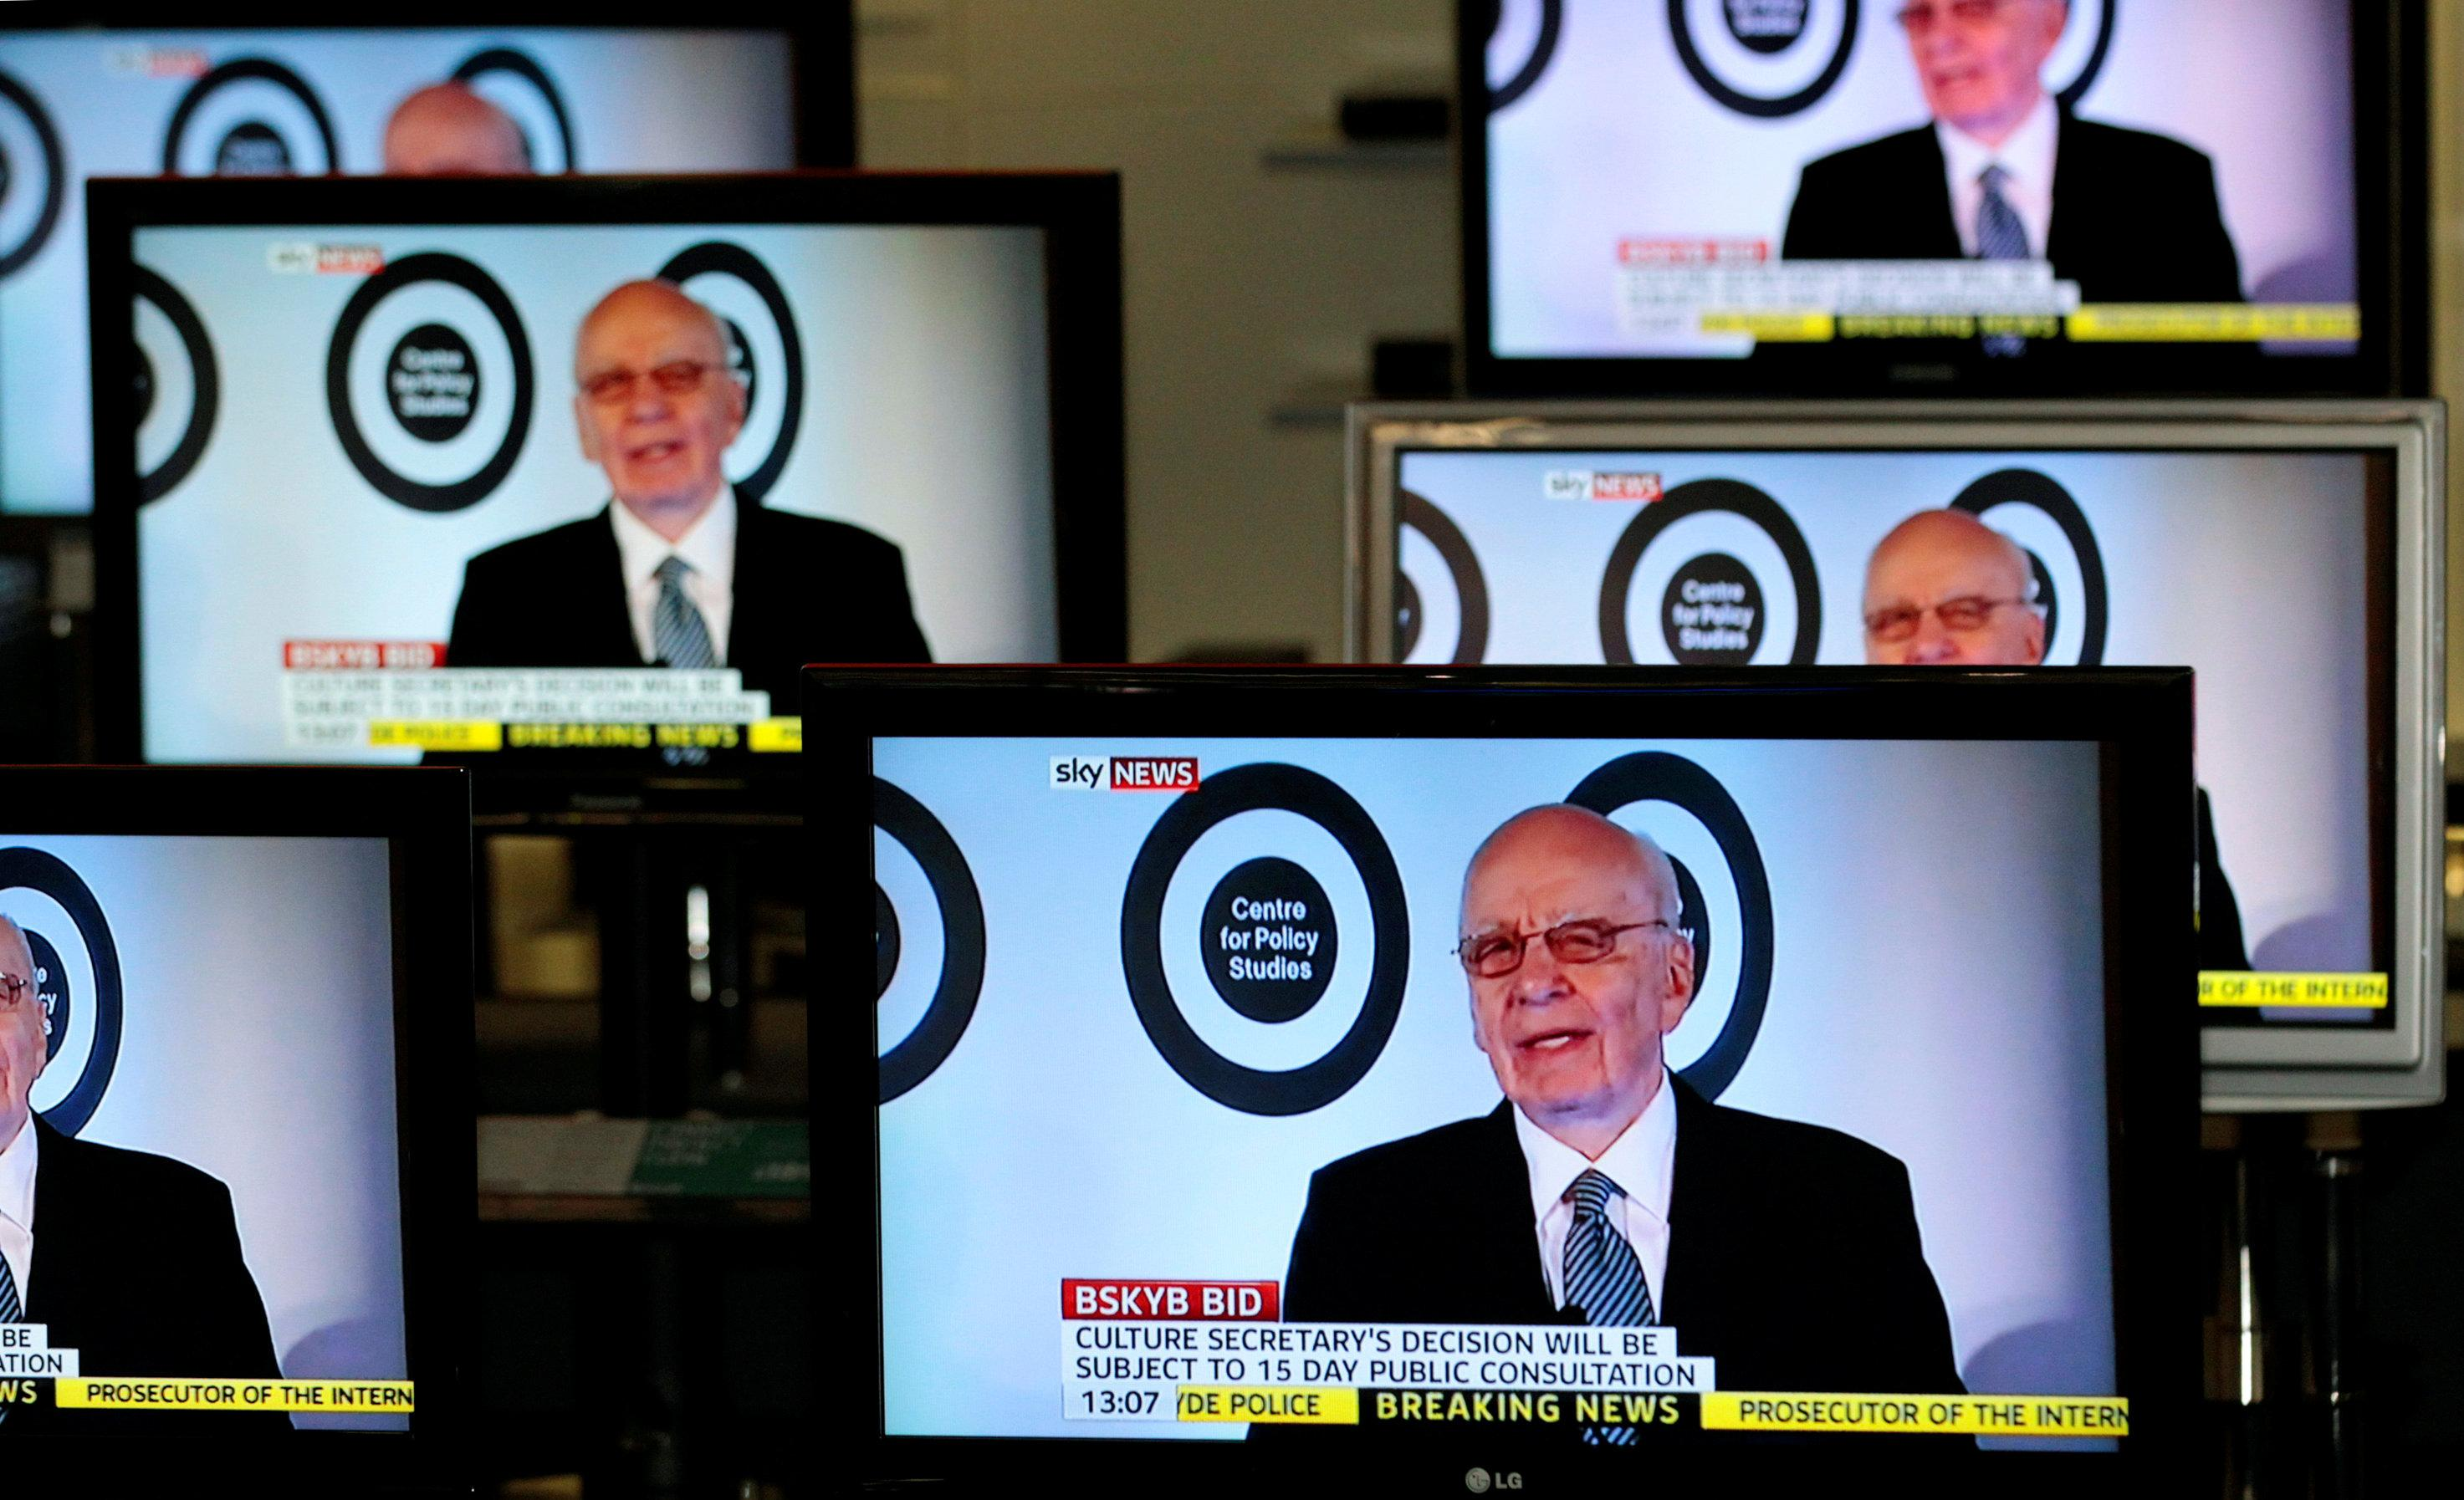 The Chairman, and Chief Executive of News Corporation, Rupert Murdoch is seen talking on Sky News on television screens in an electrical store in Edinburgh, March 3, 2011. David Moir